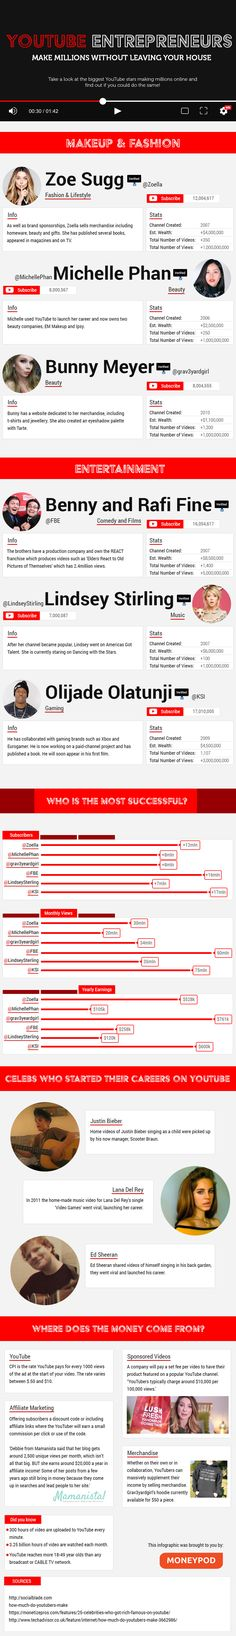 Over the past few years social media stars have made a fortune online, using YouTube to create their own brand. Take a look at how they've made their careers and the money that they're making.#Youtube Entrepreuners? by Moneypod. Related Posts No related posts.